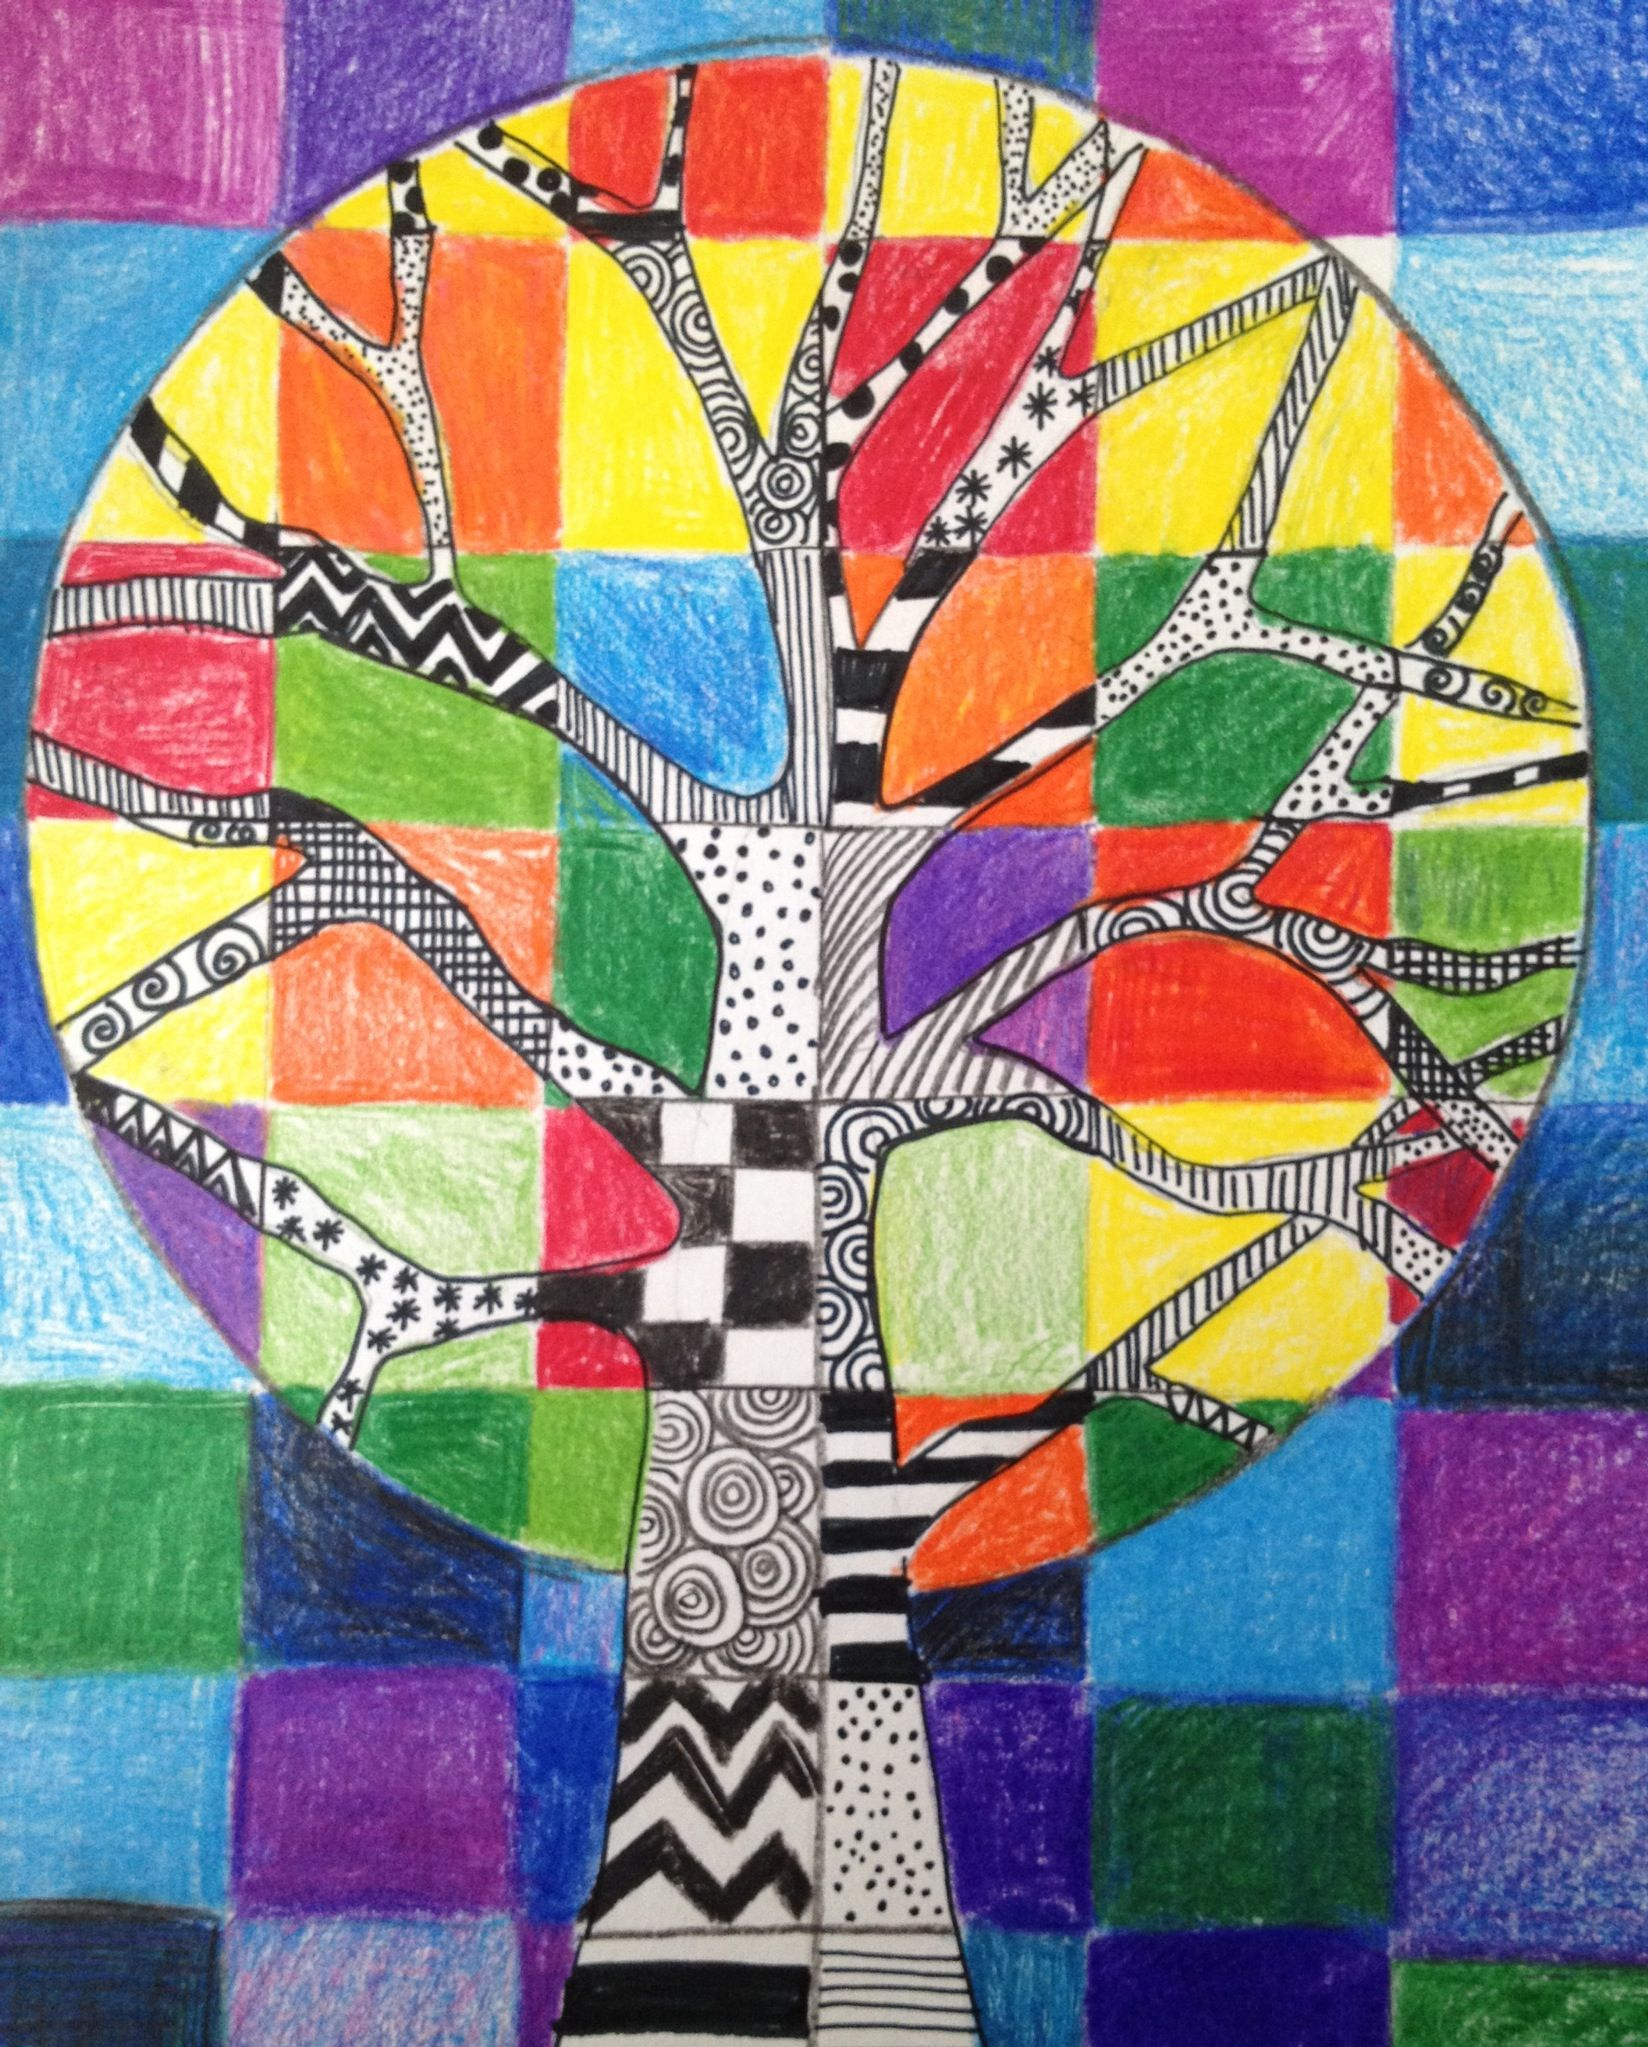 Color art colored pencils - Zentangle Tree With Warm And Cool Colored Pencil With Black White Patterns On Tree Maybe Keep Warm Colors In The Moon And Cool In The Background